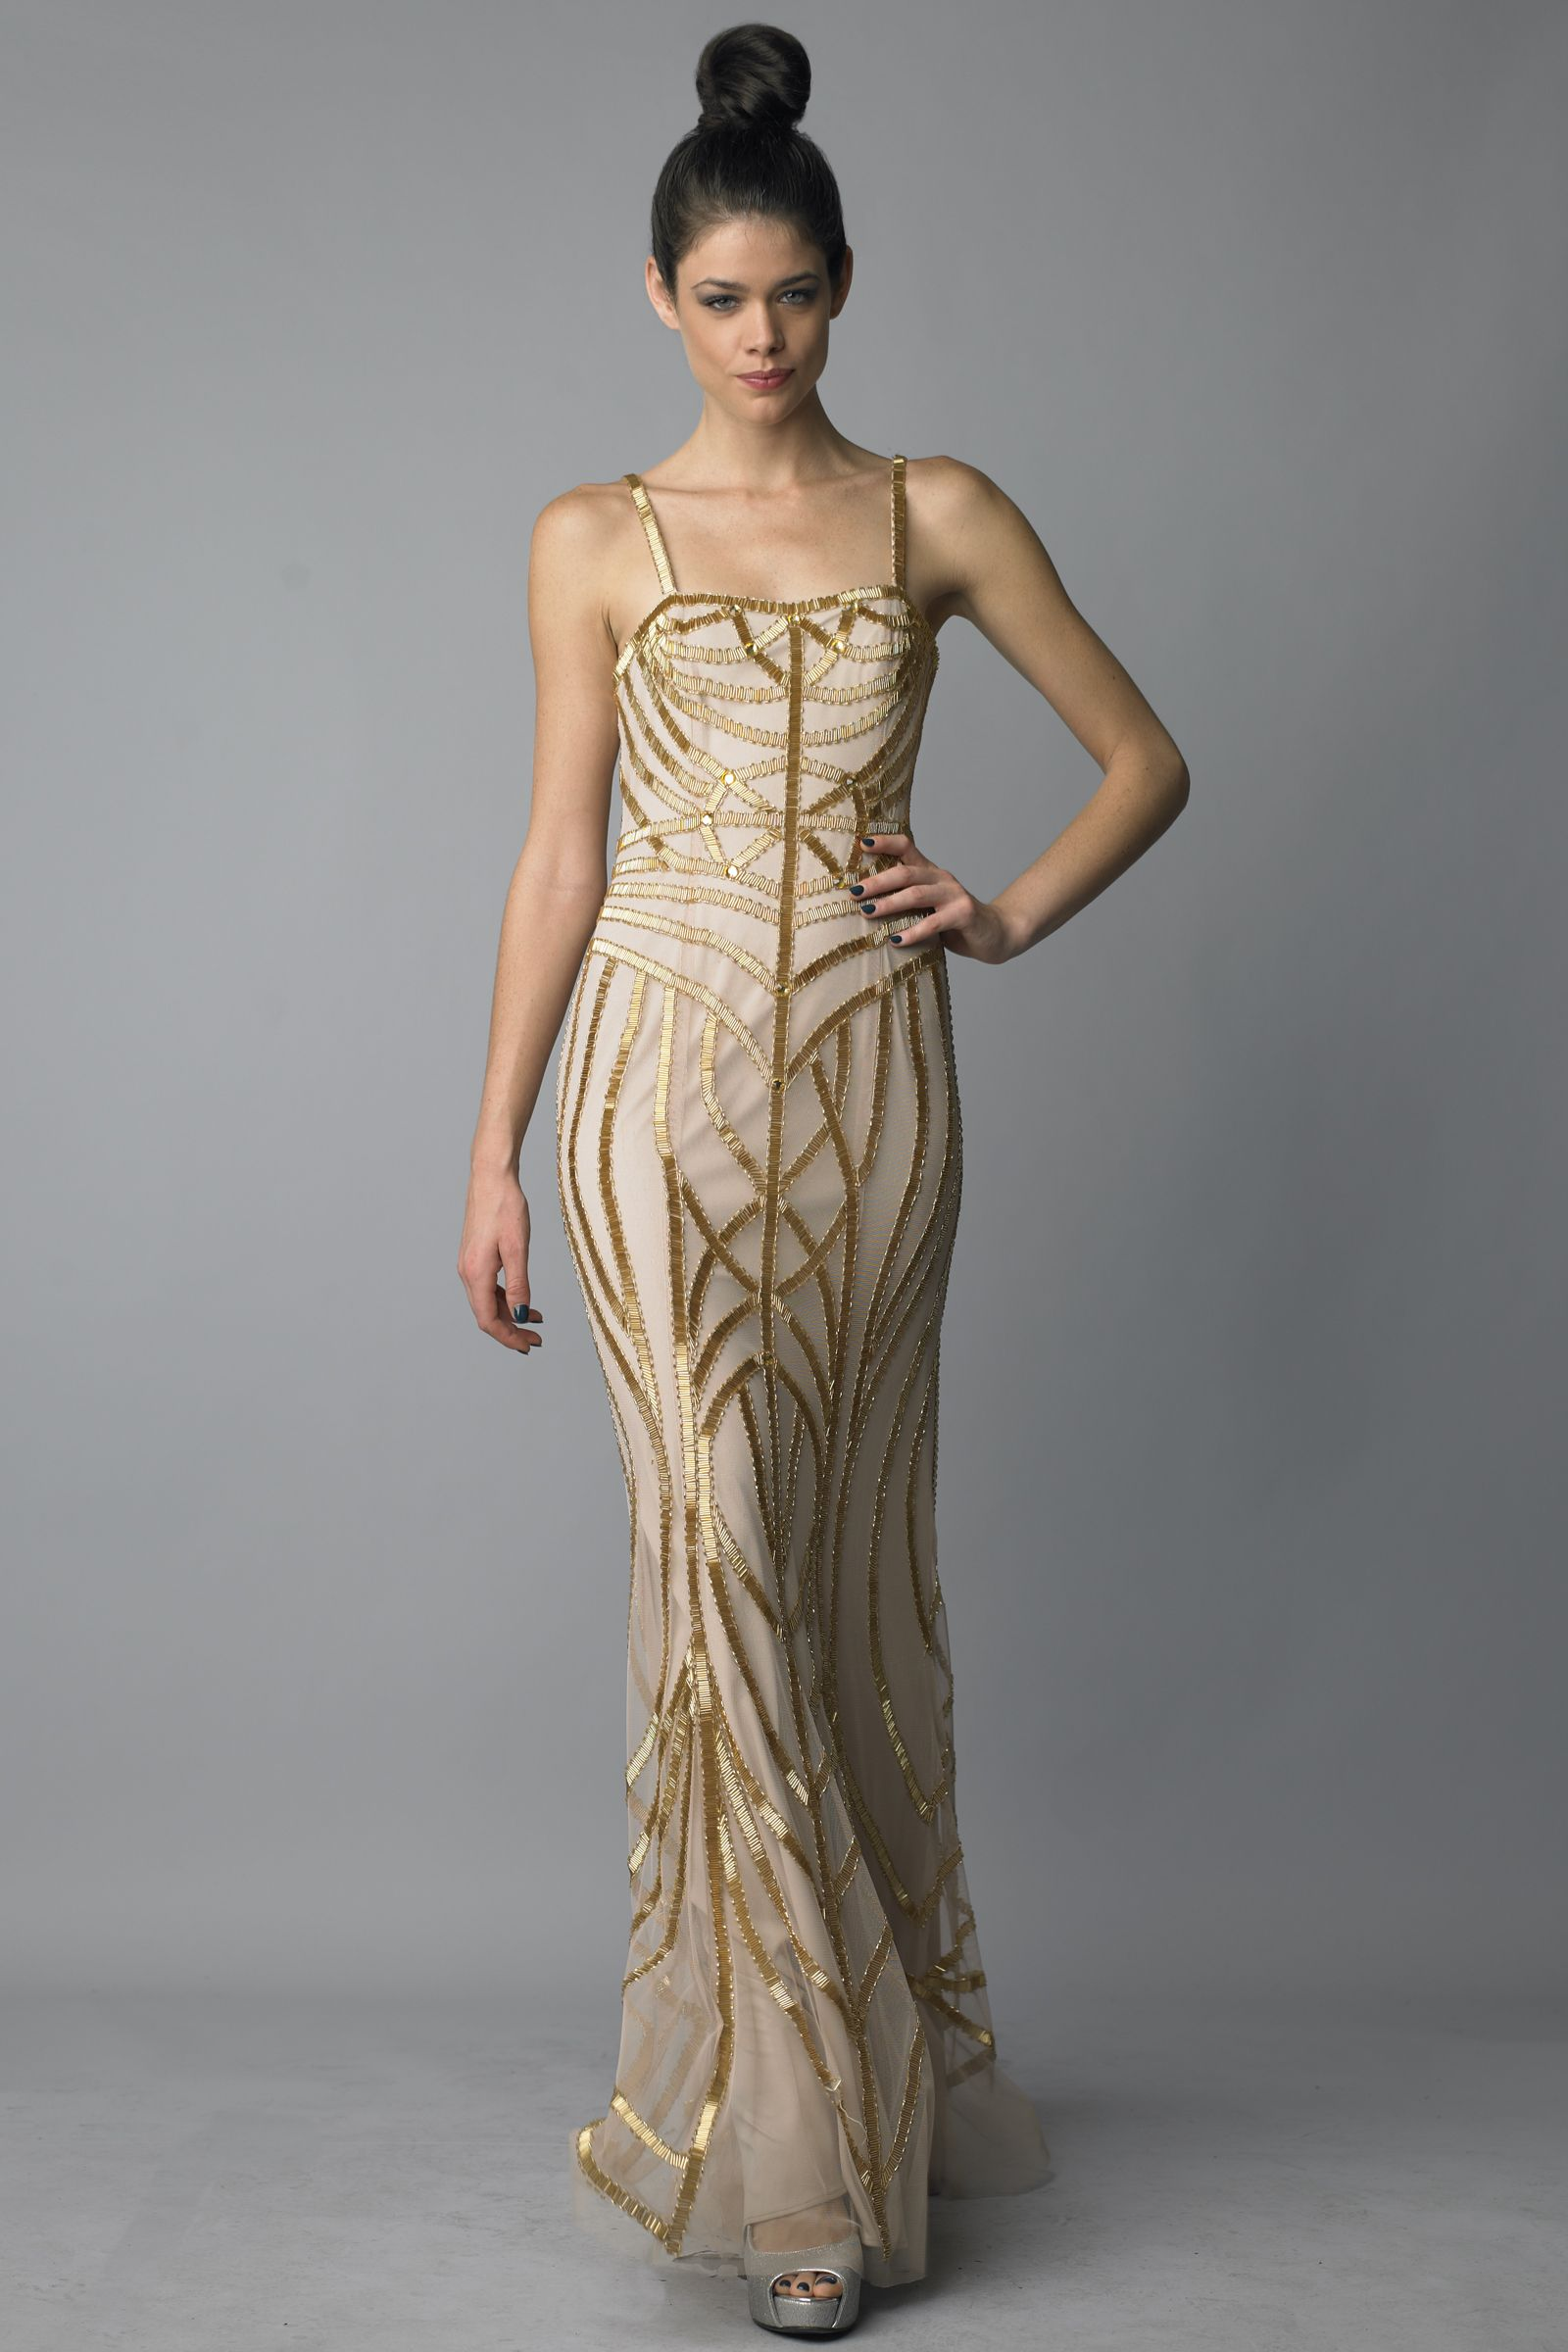 More details about Images of Gold Evening Dresses - Klarosa ...